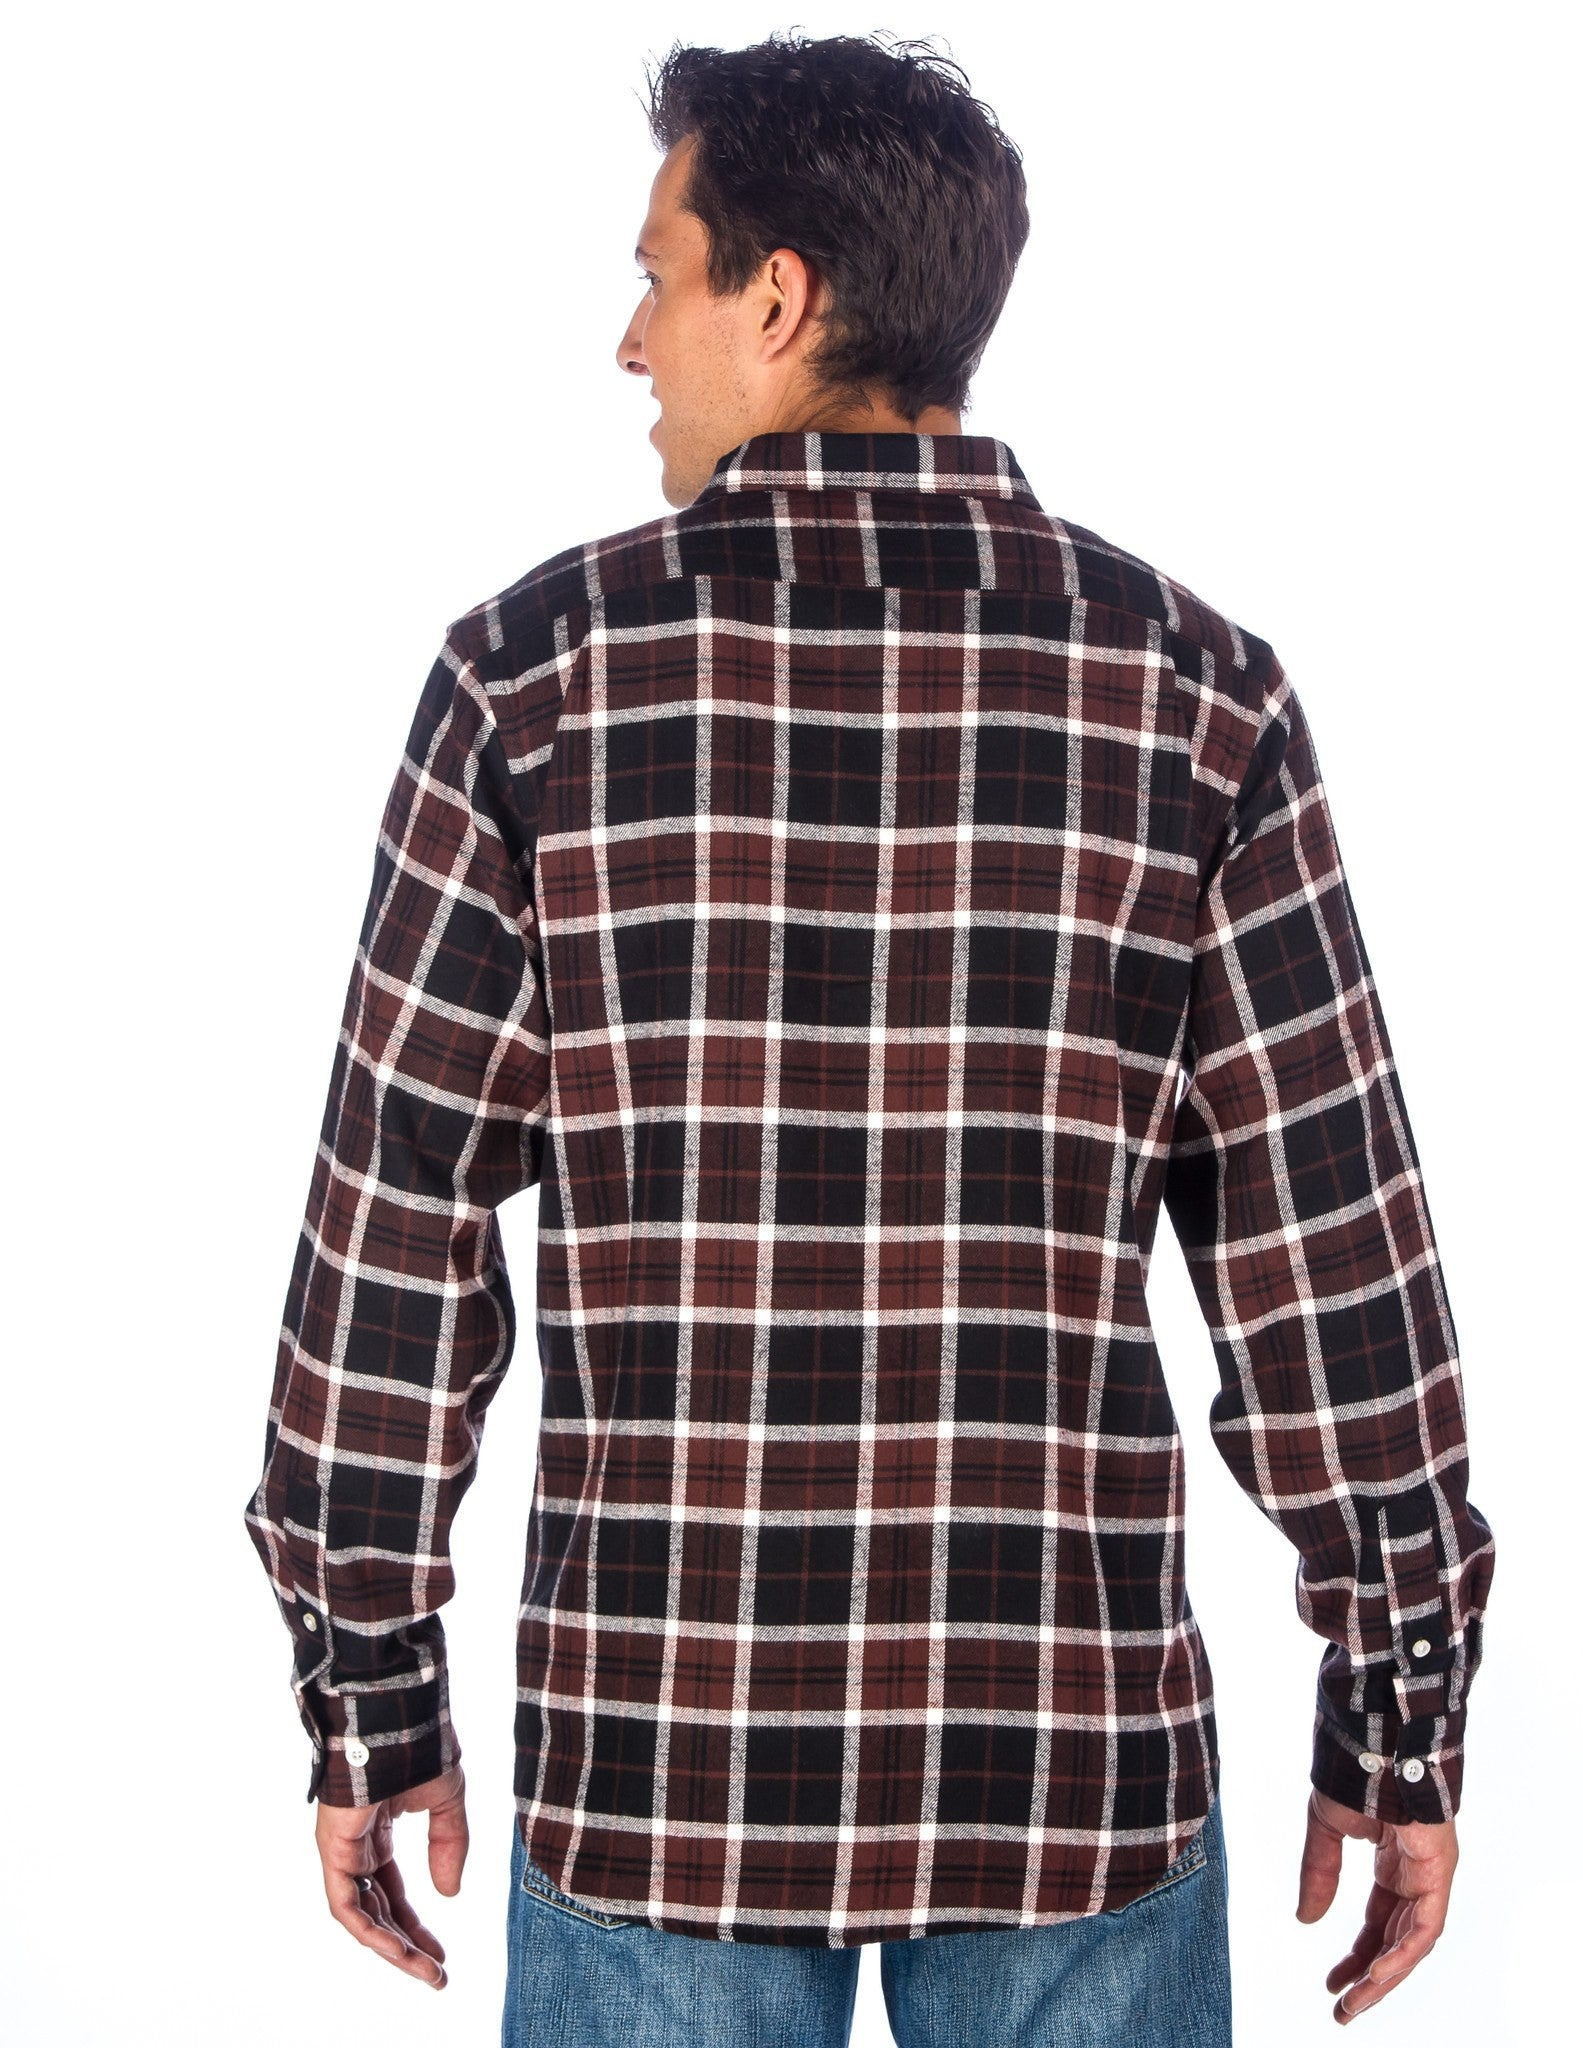 Mahogany Plaid